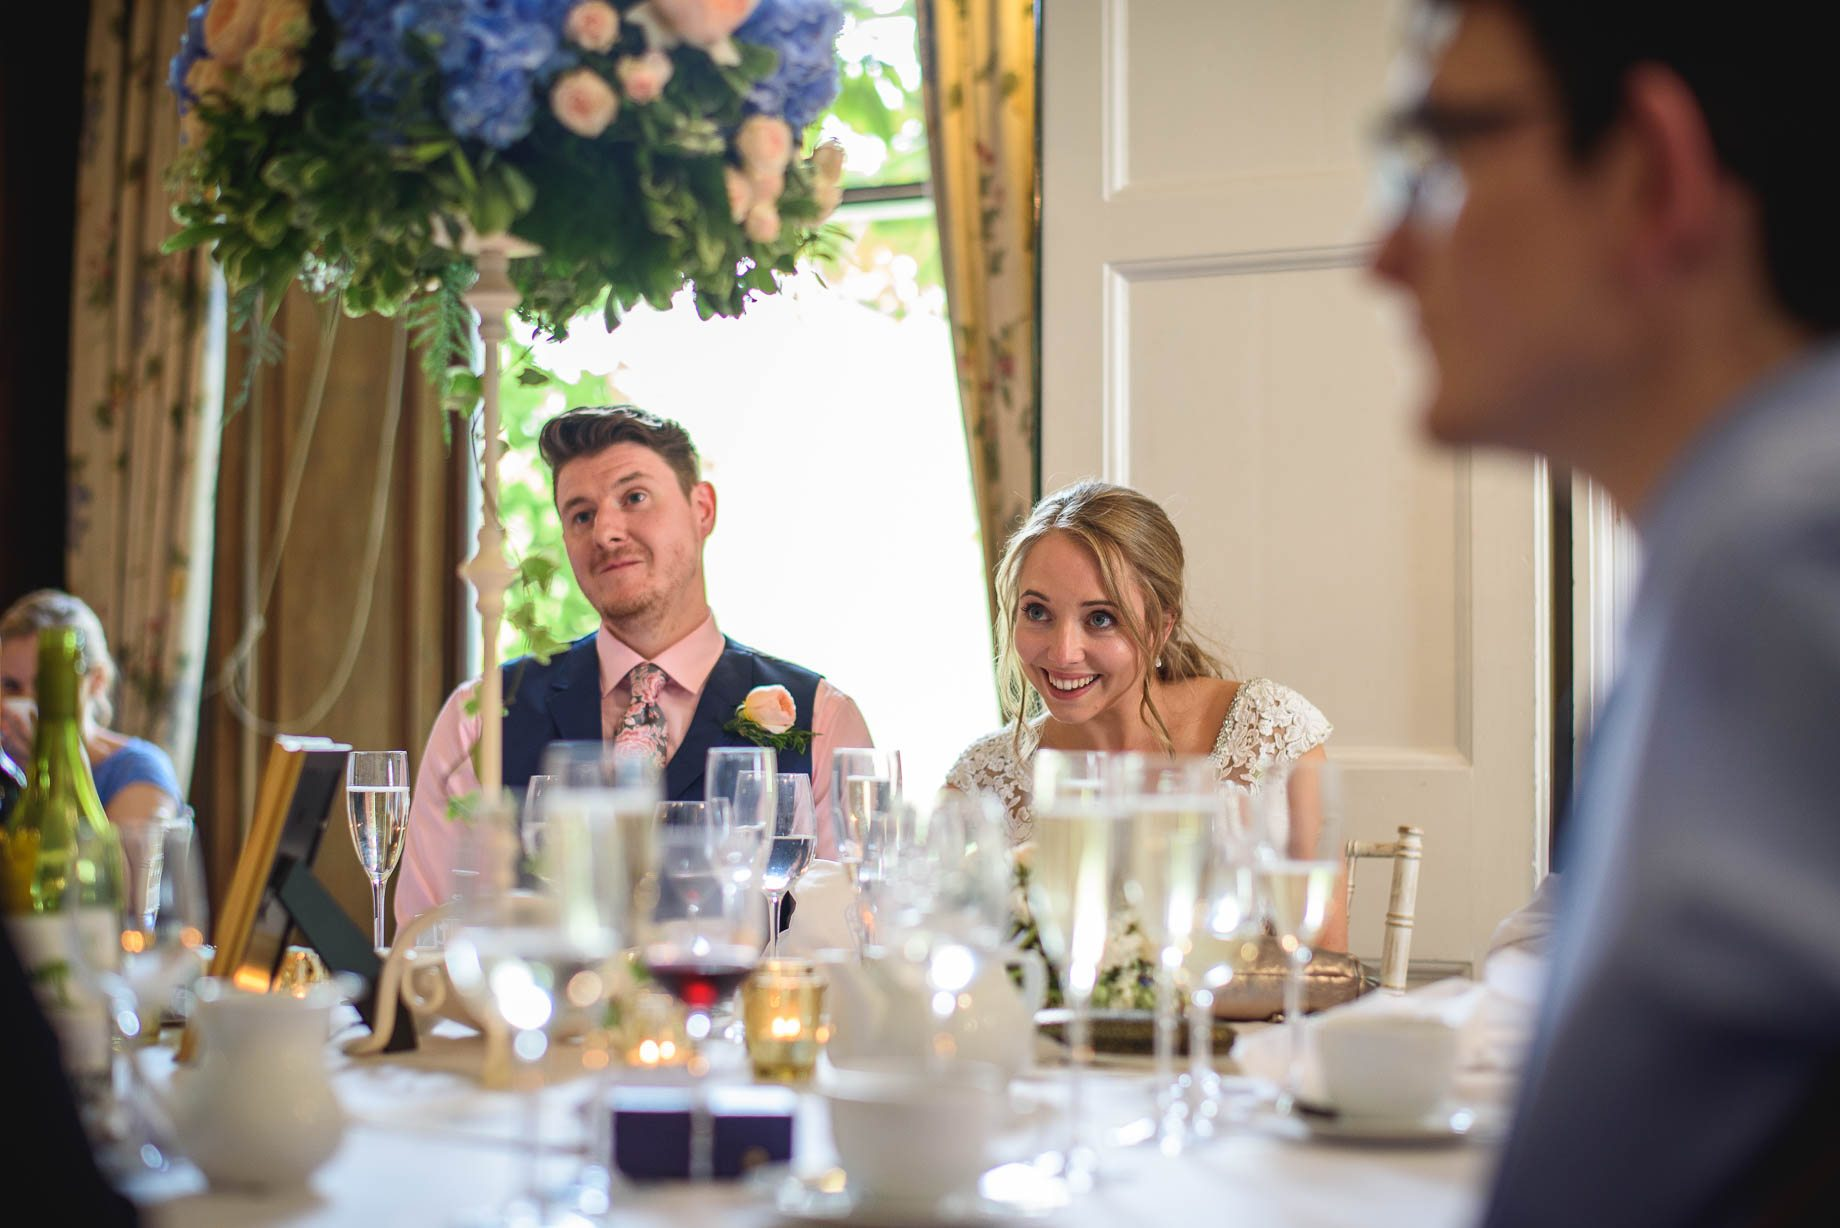 Hampshire wedding photography by Guy Collier - Emily and Tom (109 of 164)